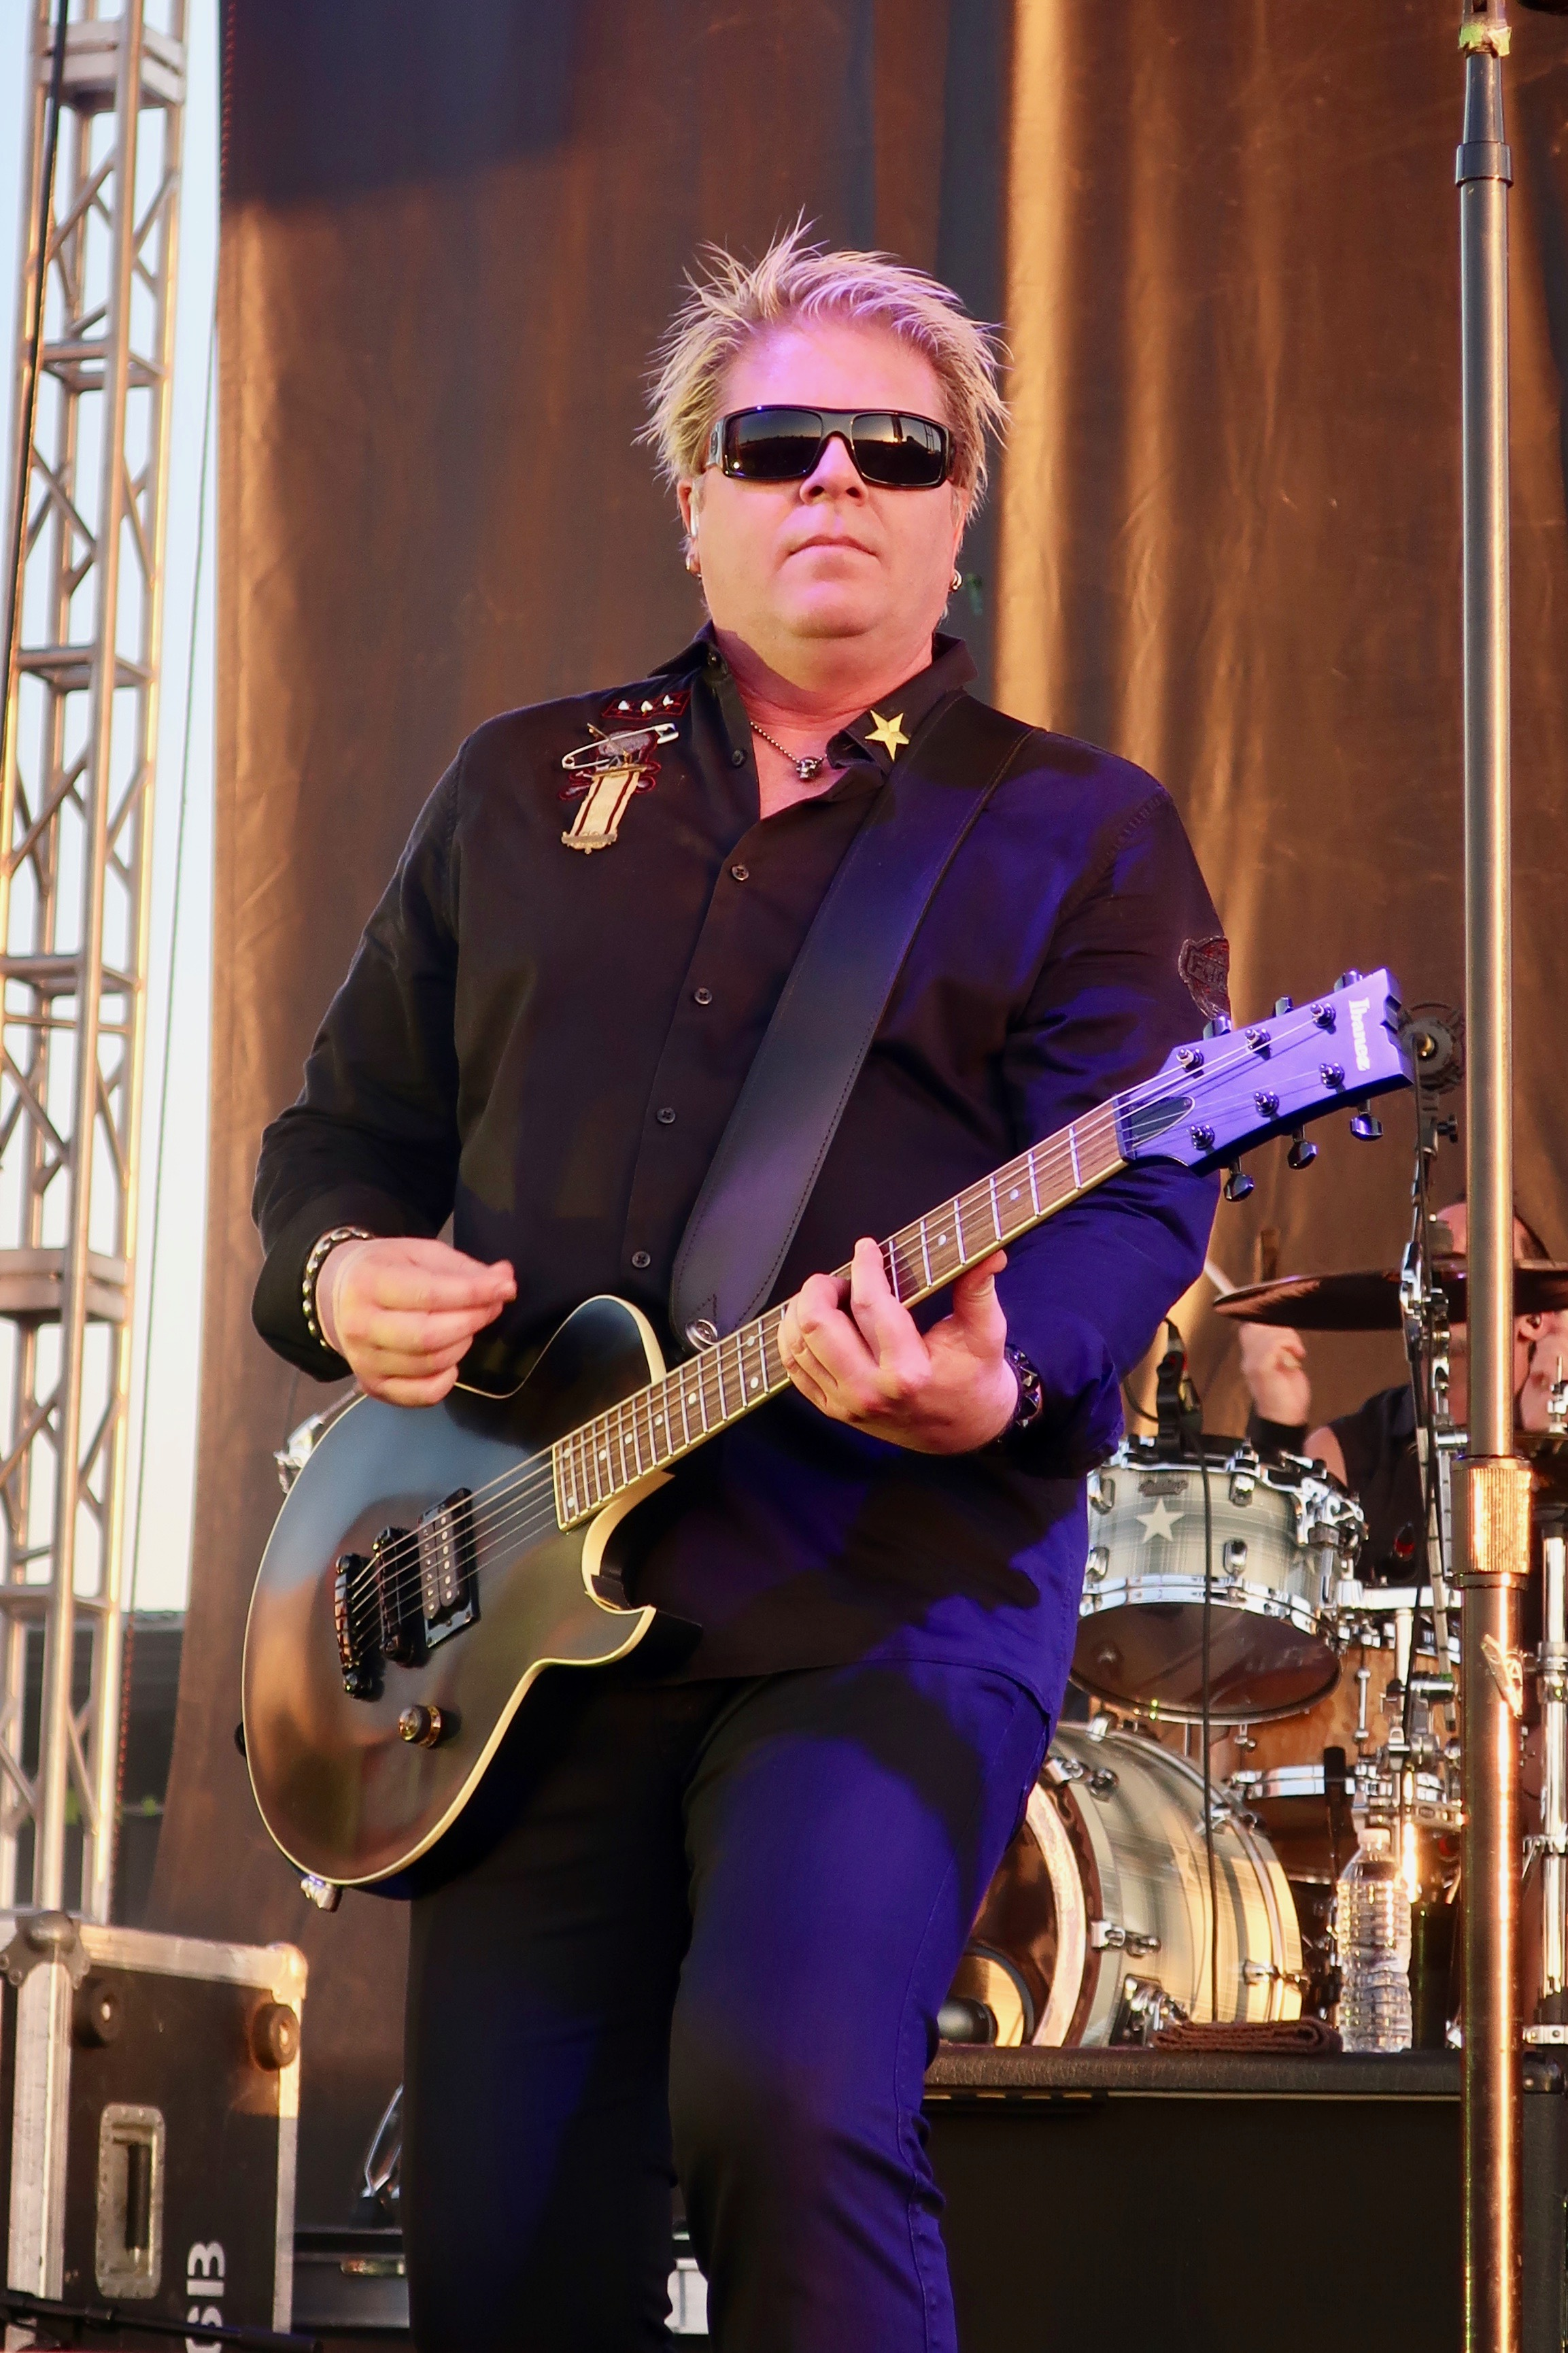 Dexter Holland of The Offspring at the 2018 stop of Sabroso Craft Beer, Taco & Music Festival in Portland, Oregon.